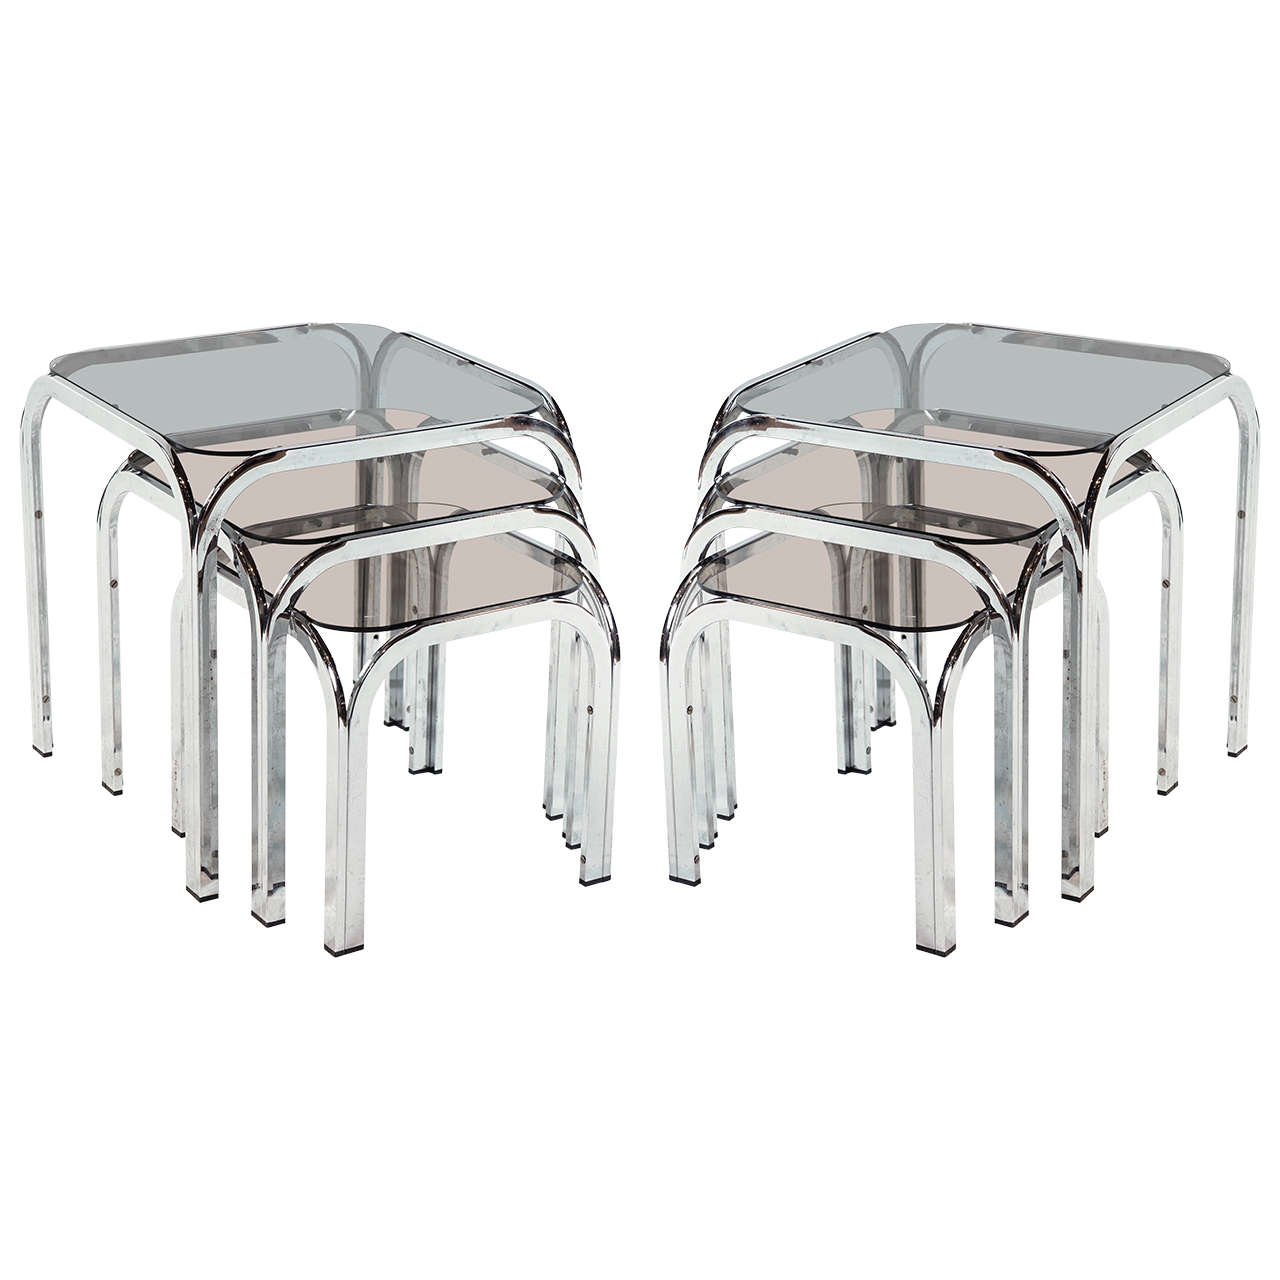 Pair Of Chrome And Smoked Glass Nesting Tables At 1stdibs